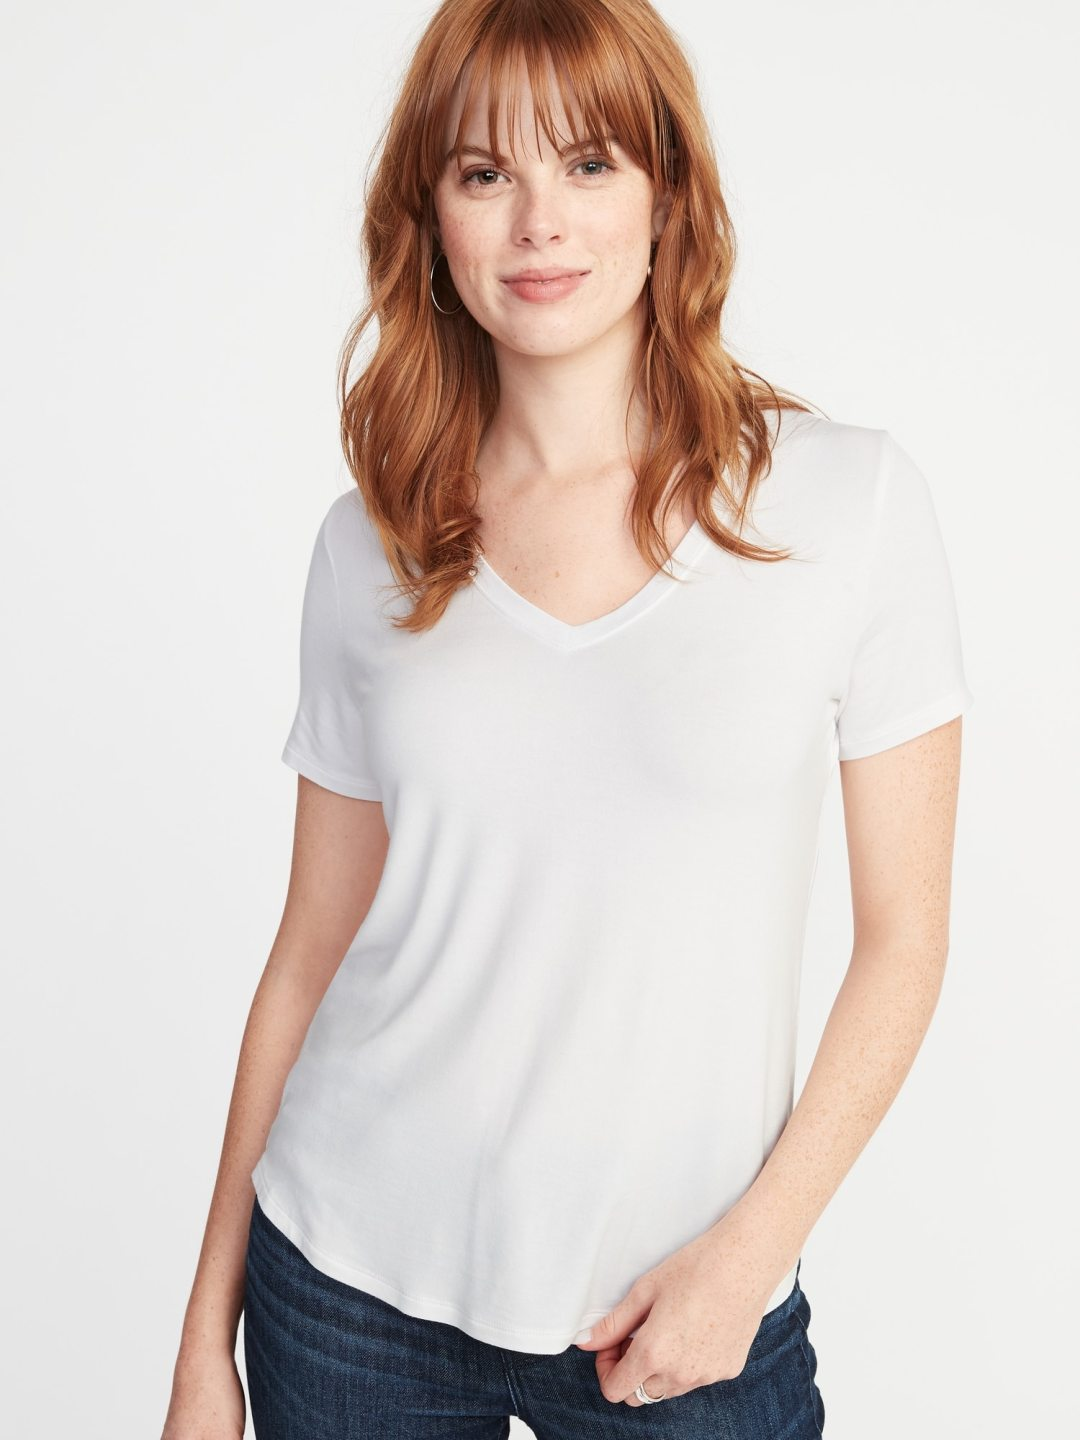 Wardrobe essentials Luxe v-neck Tee from Old Navy